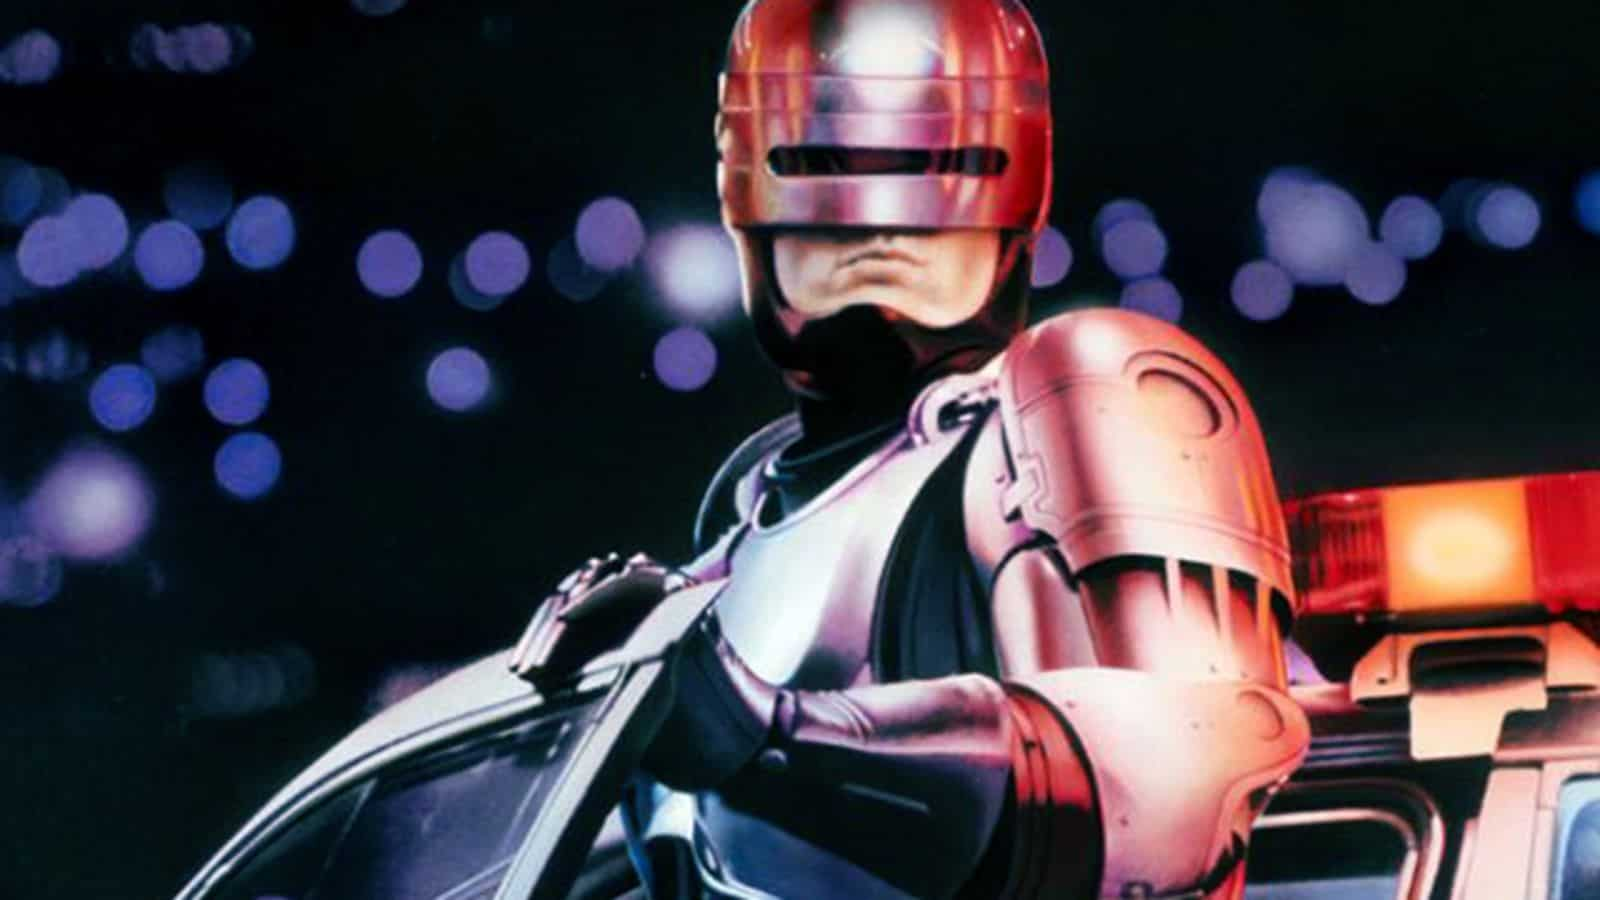 RoboCop: a Dick Jones origin series is being planned for TV – Film Stories